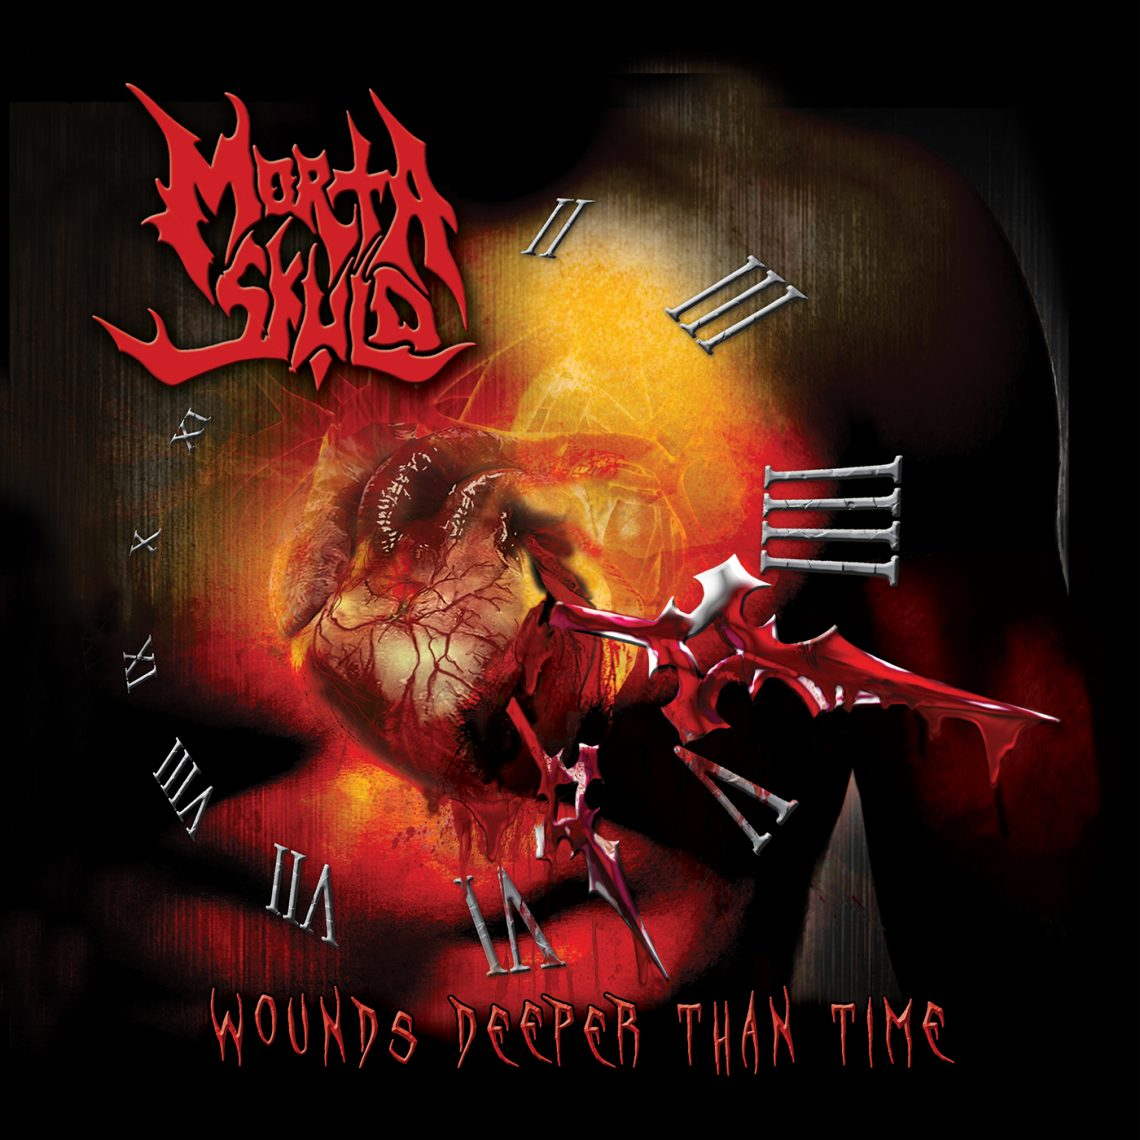 Morta Skuld announce new album 'Wounds Deeper Than Time' on Peaceville